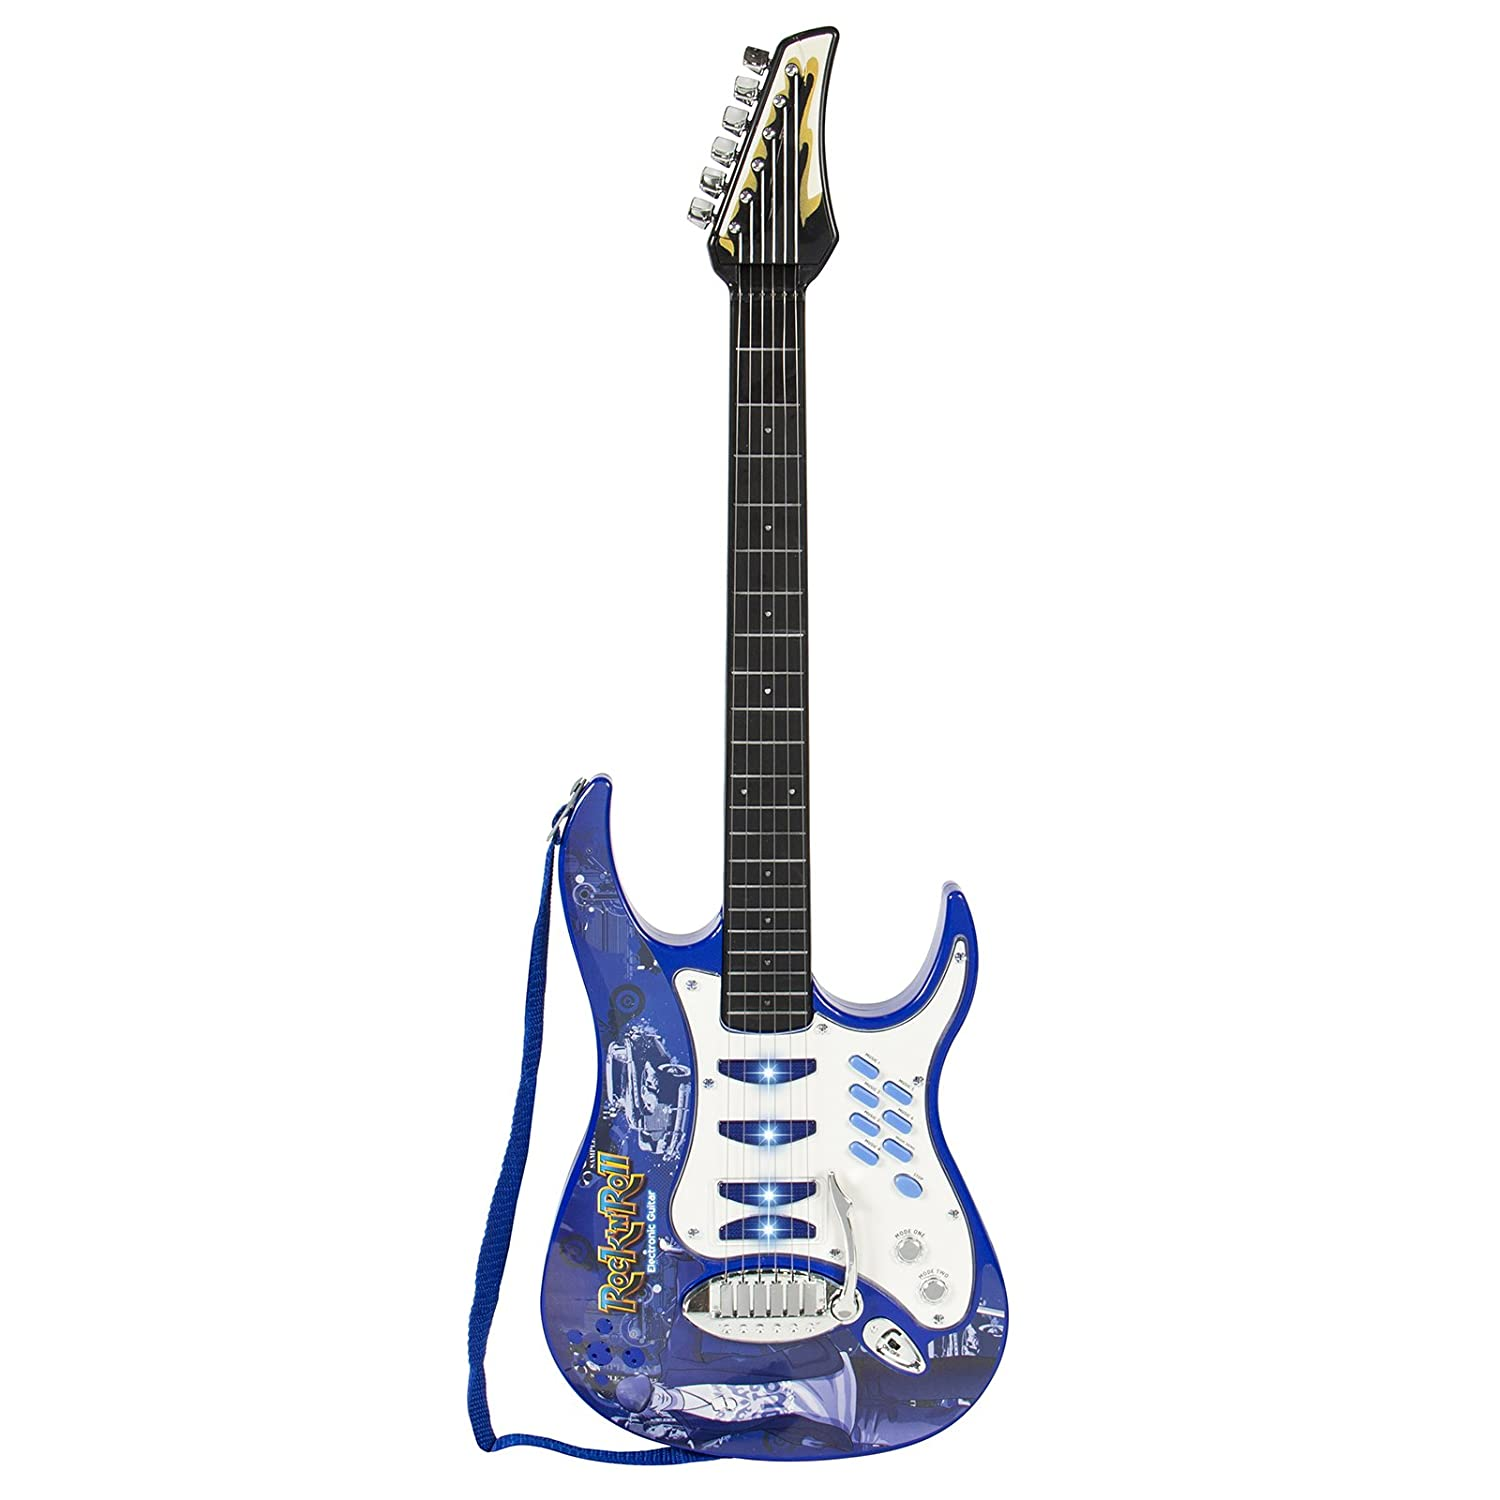 amazon com best choice products kids electric musical guitar toyamazon com best choice products kids electric musical guitar toy play set w 6 demo songs, whammy bar, microphone, amp, aux blue toys \u0026 games